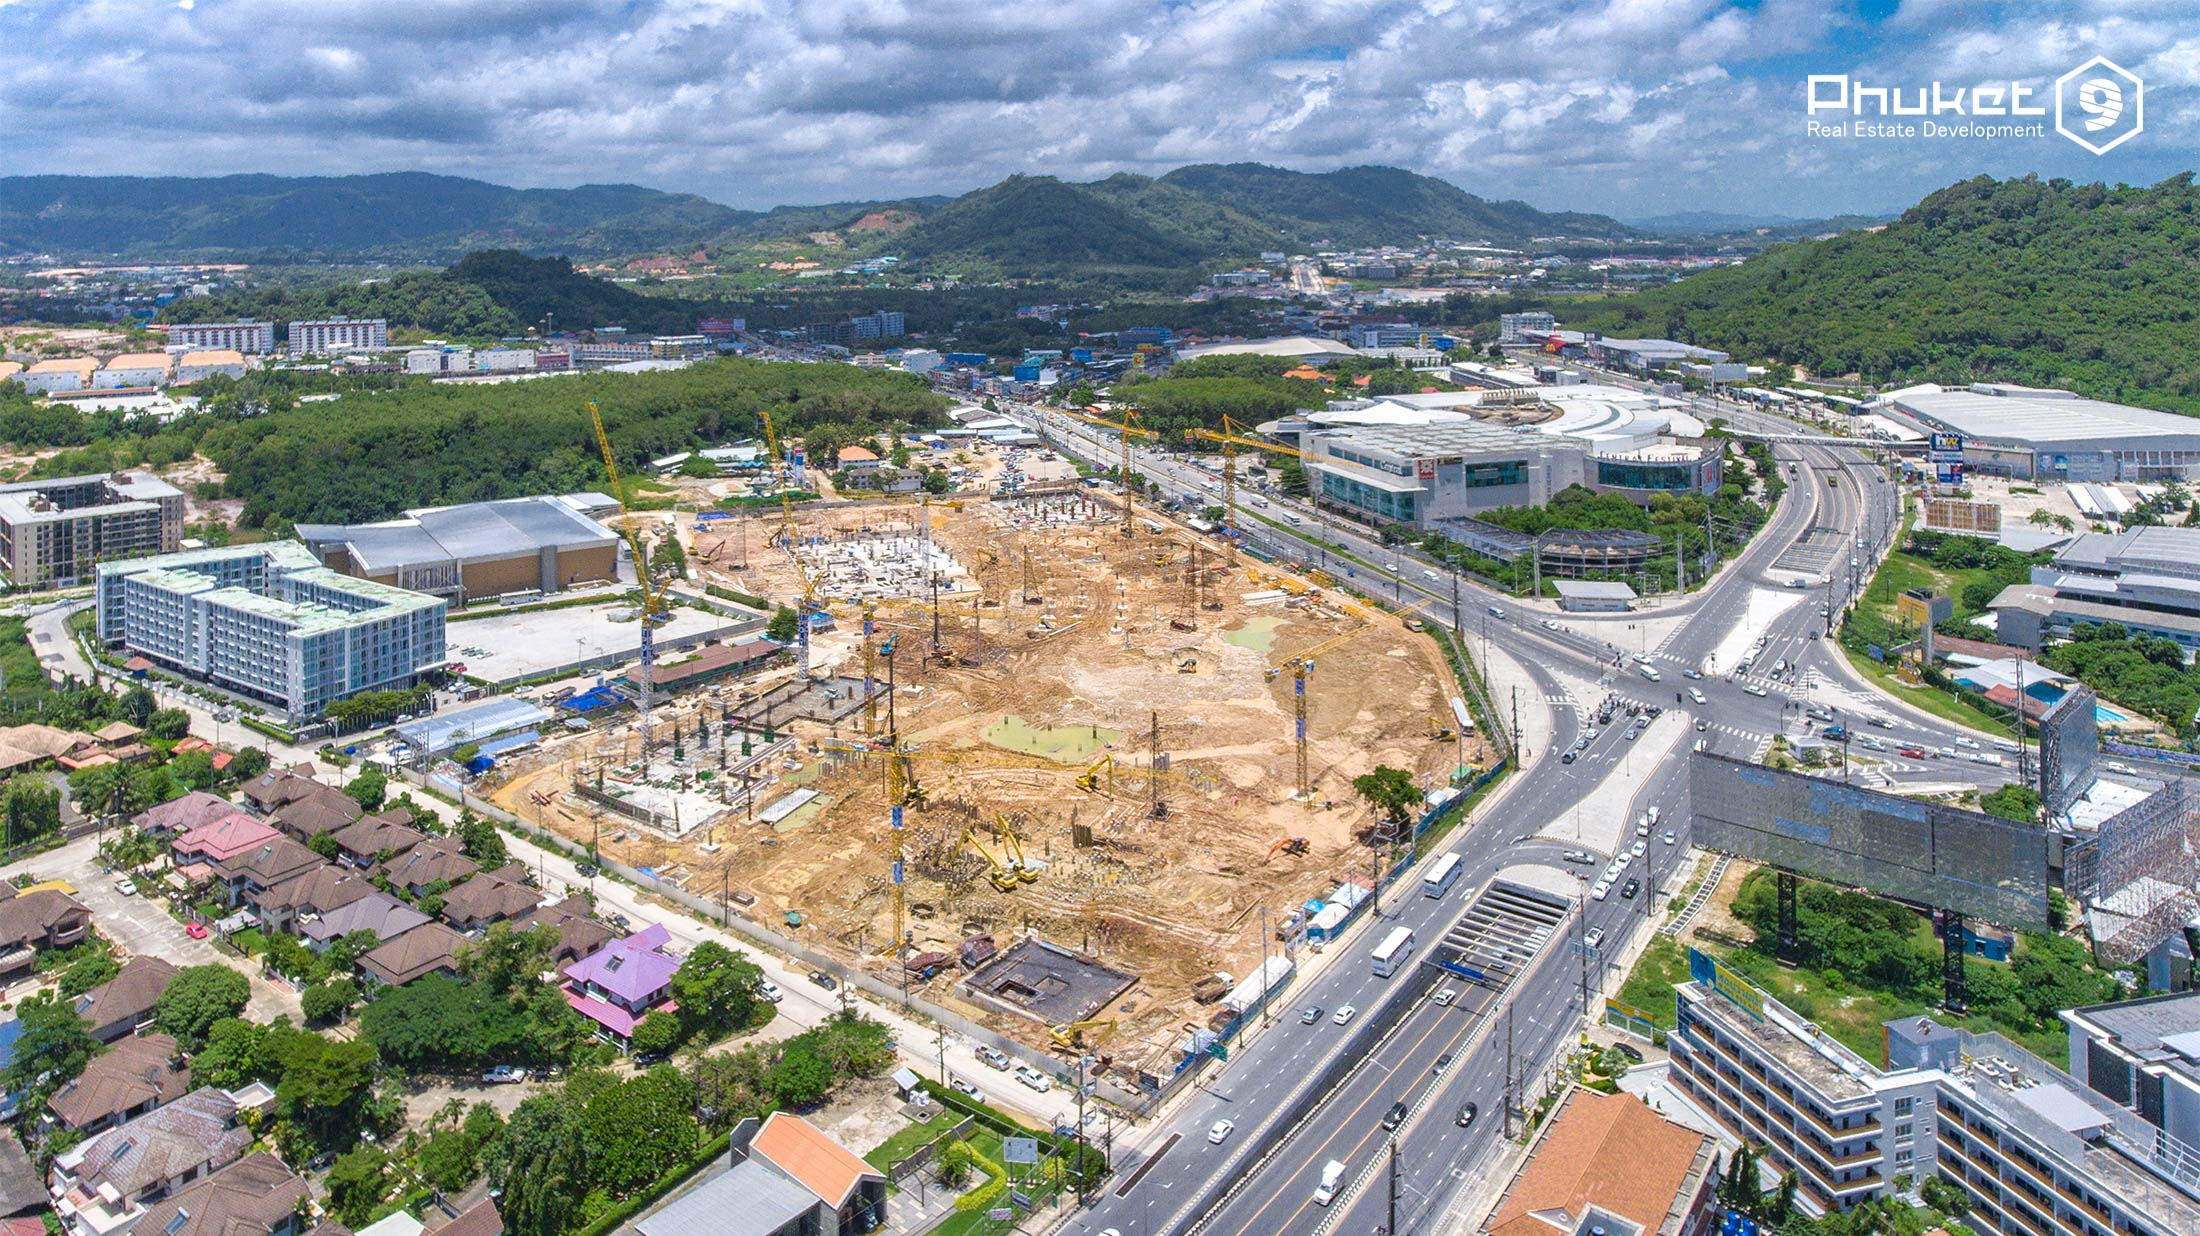 central phuket construction